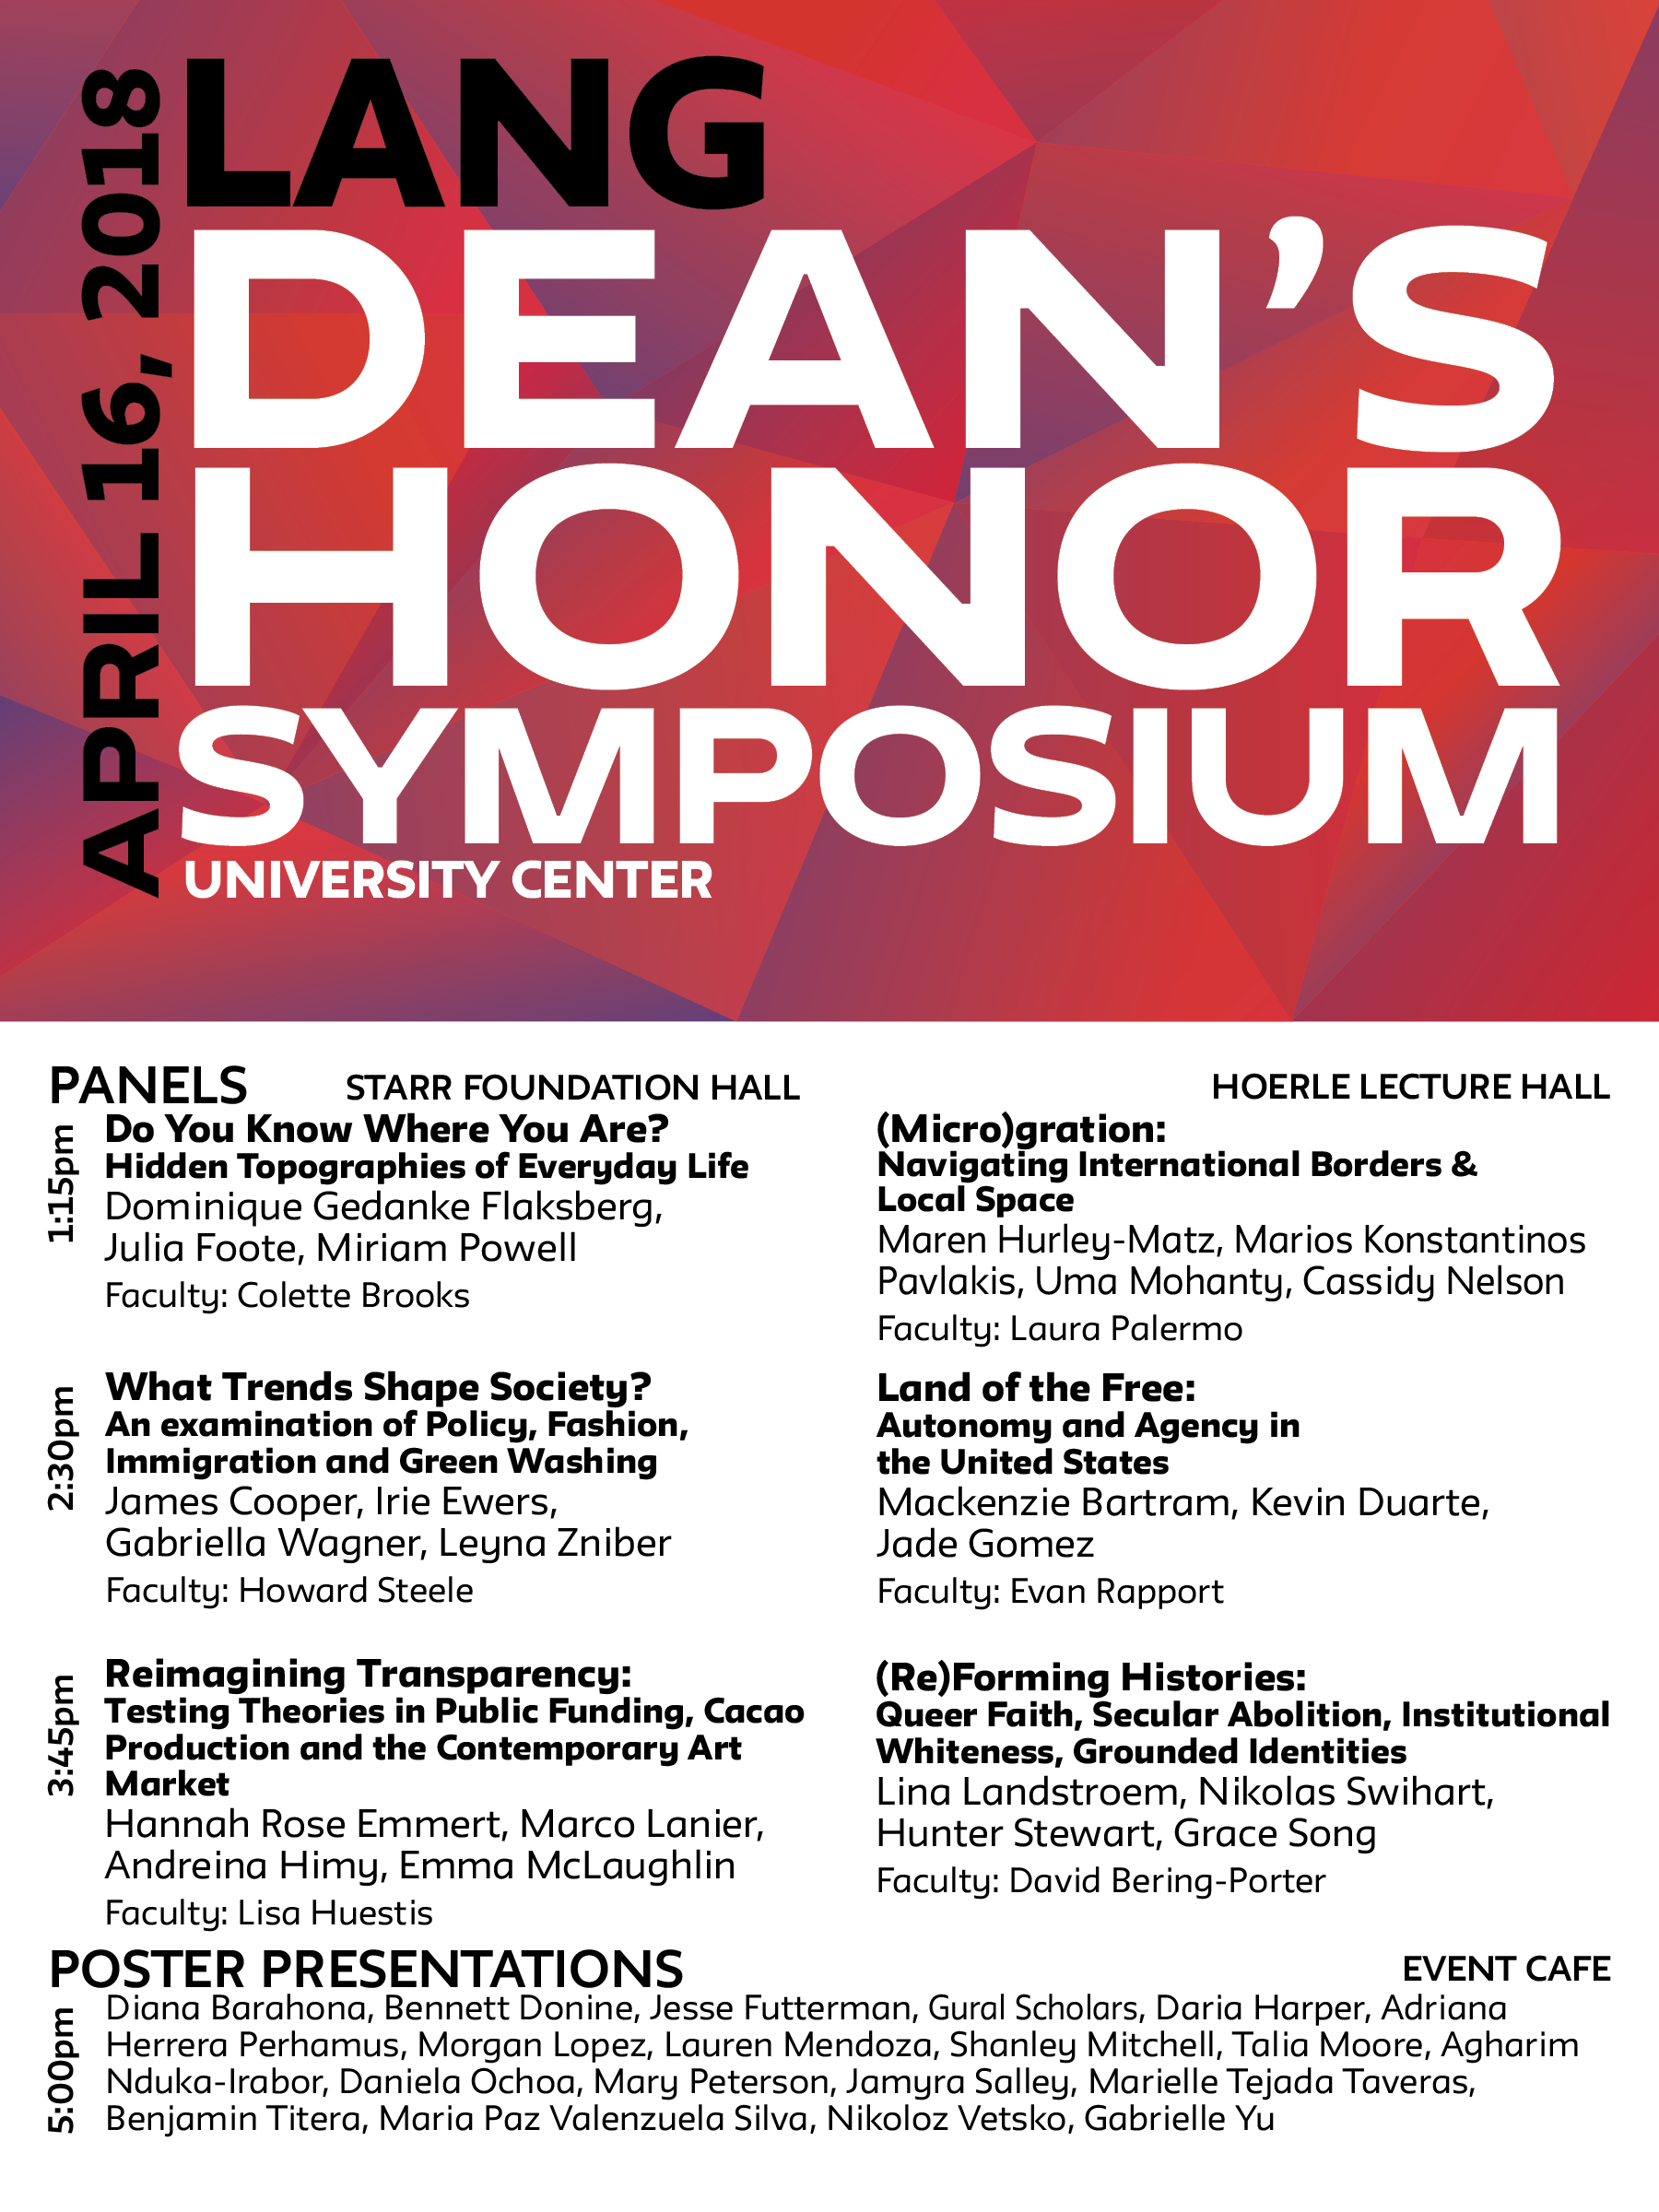 Dean's Honor Symposium